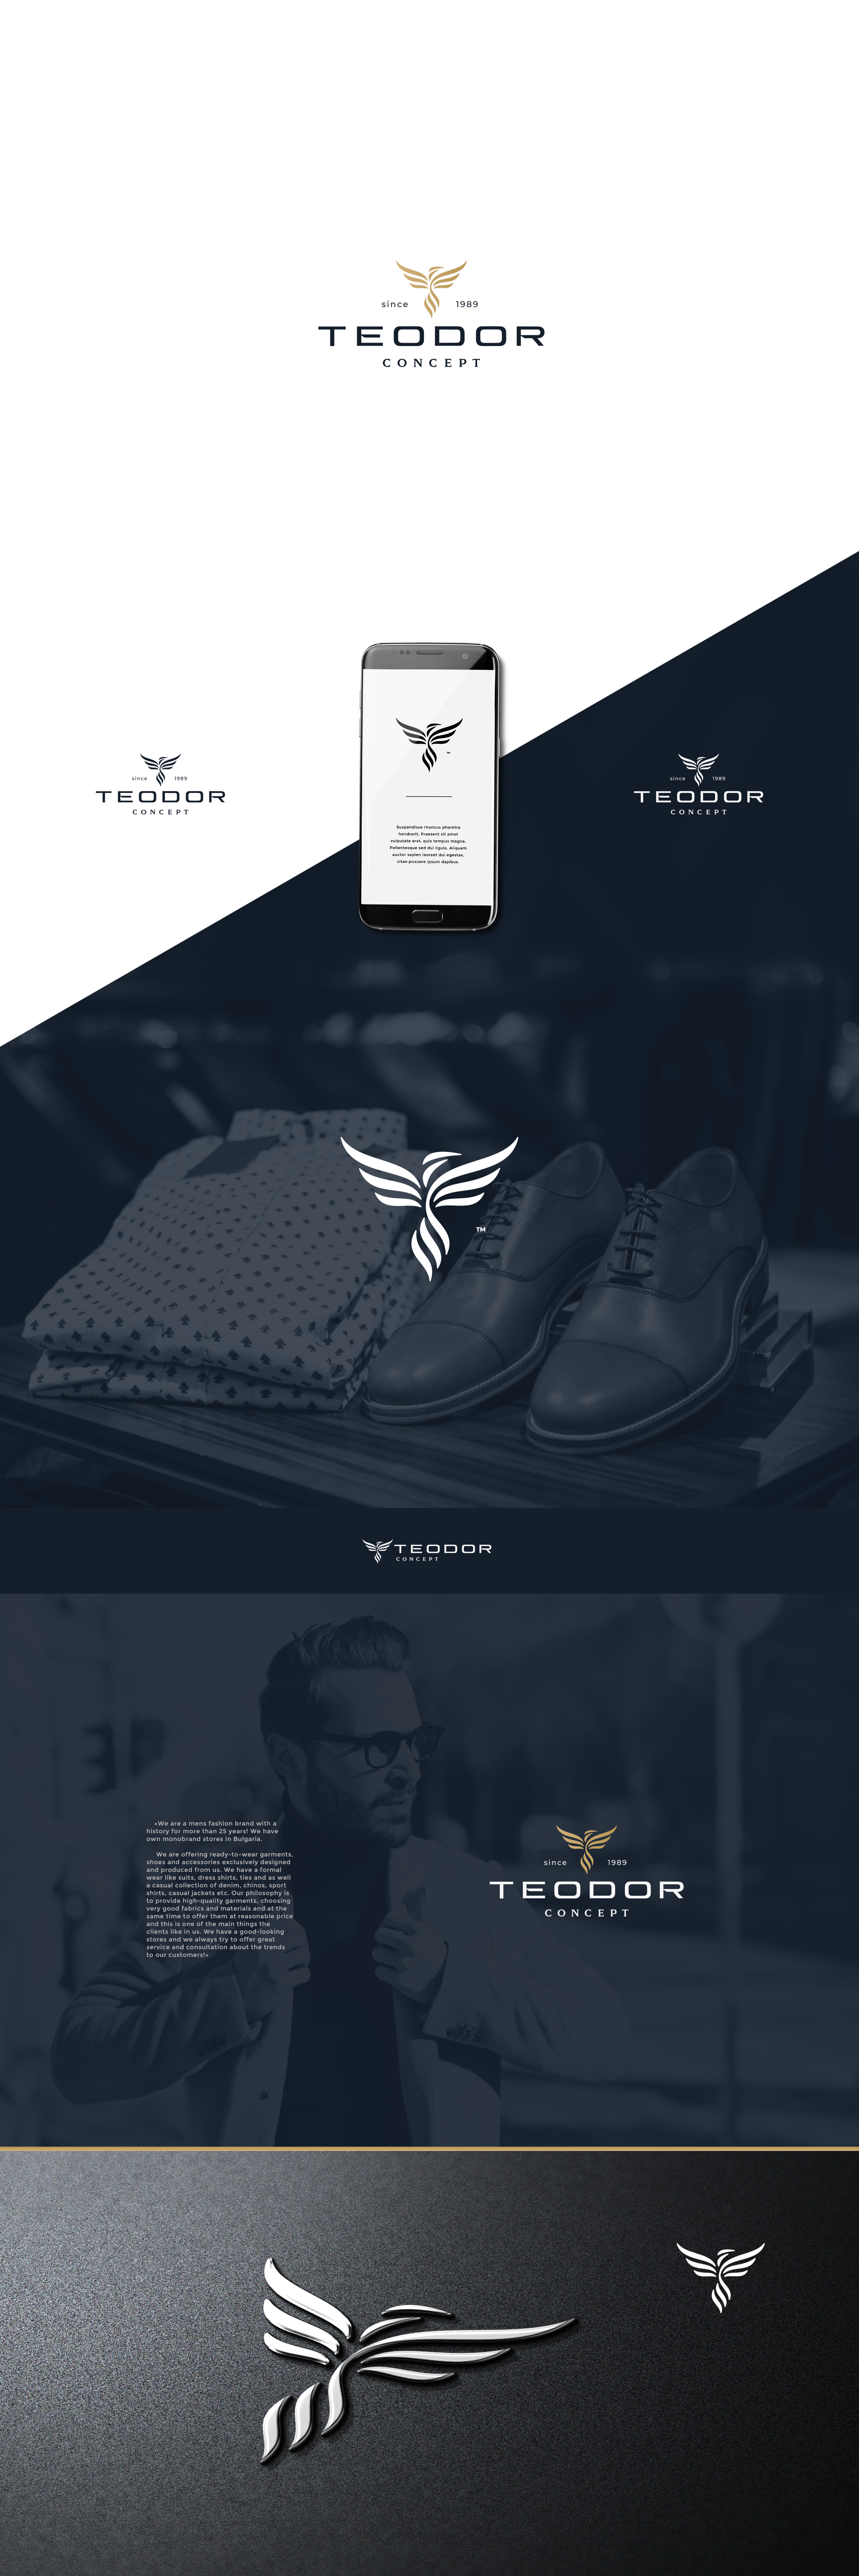 Logo and wordmark for the luxury fashion brand - TEODOR Concept